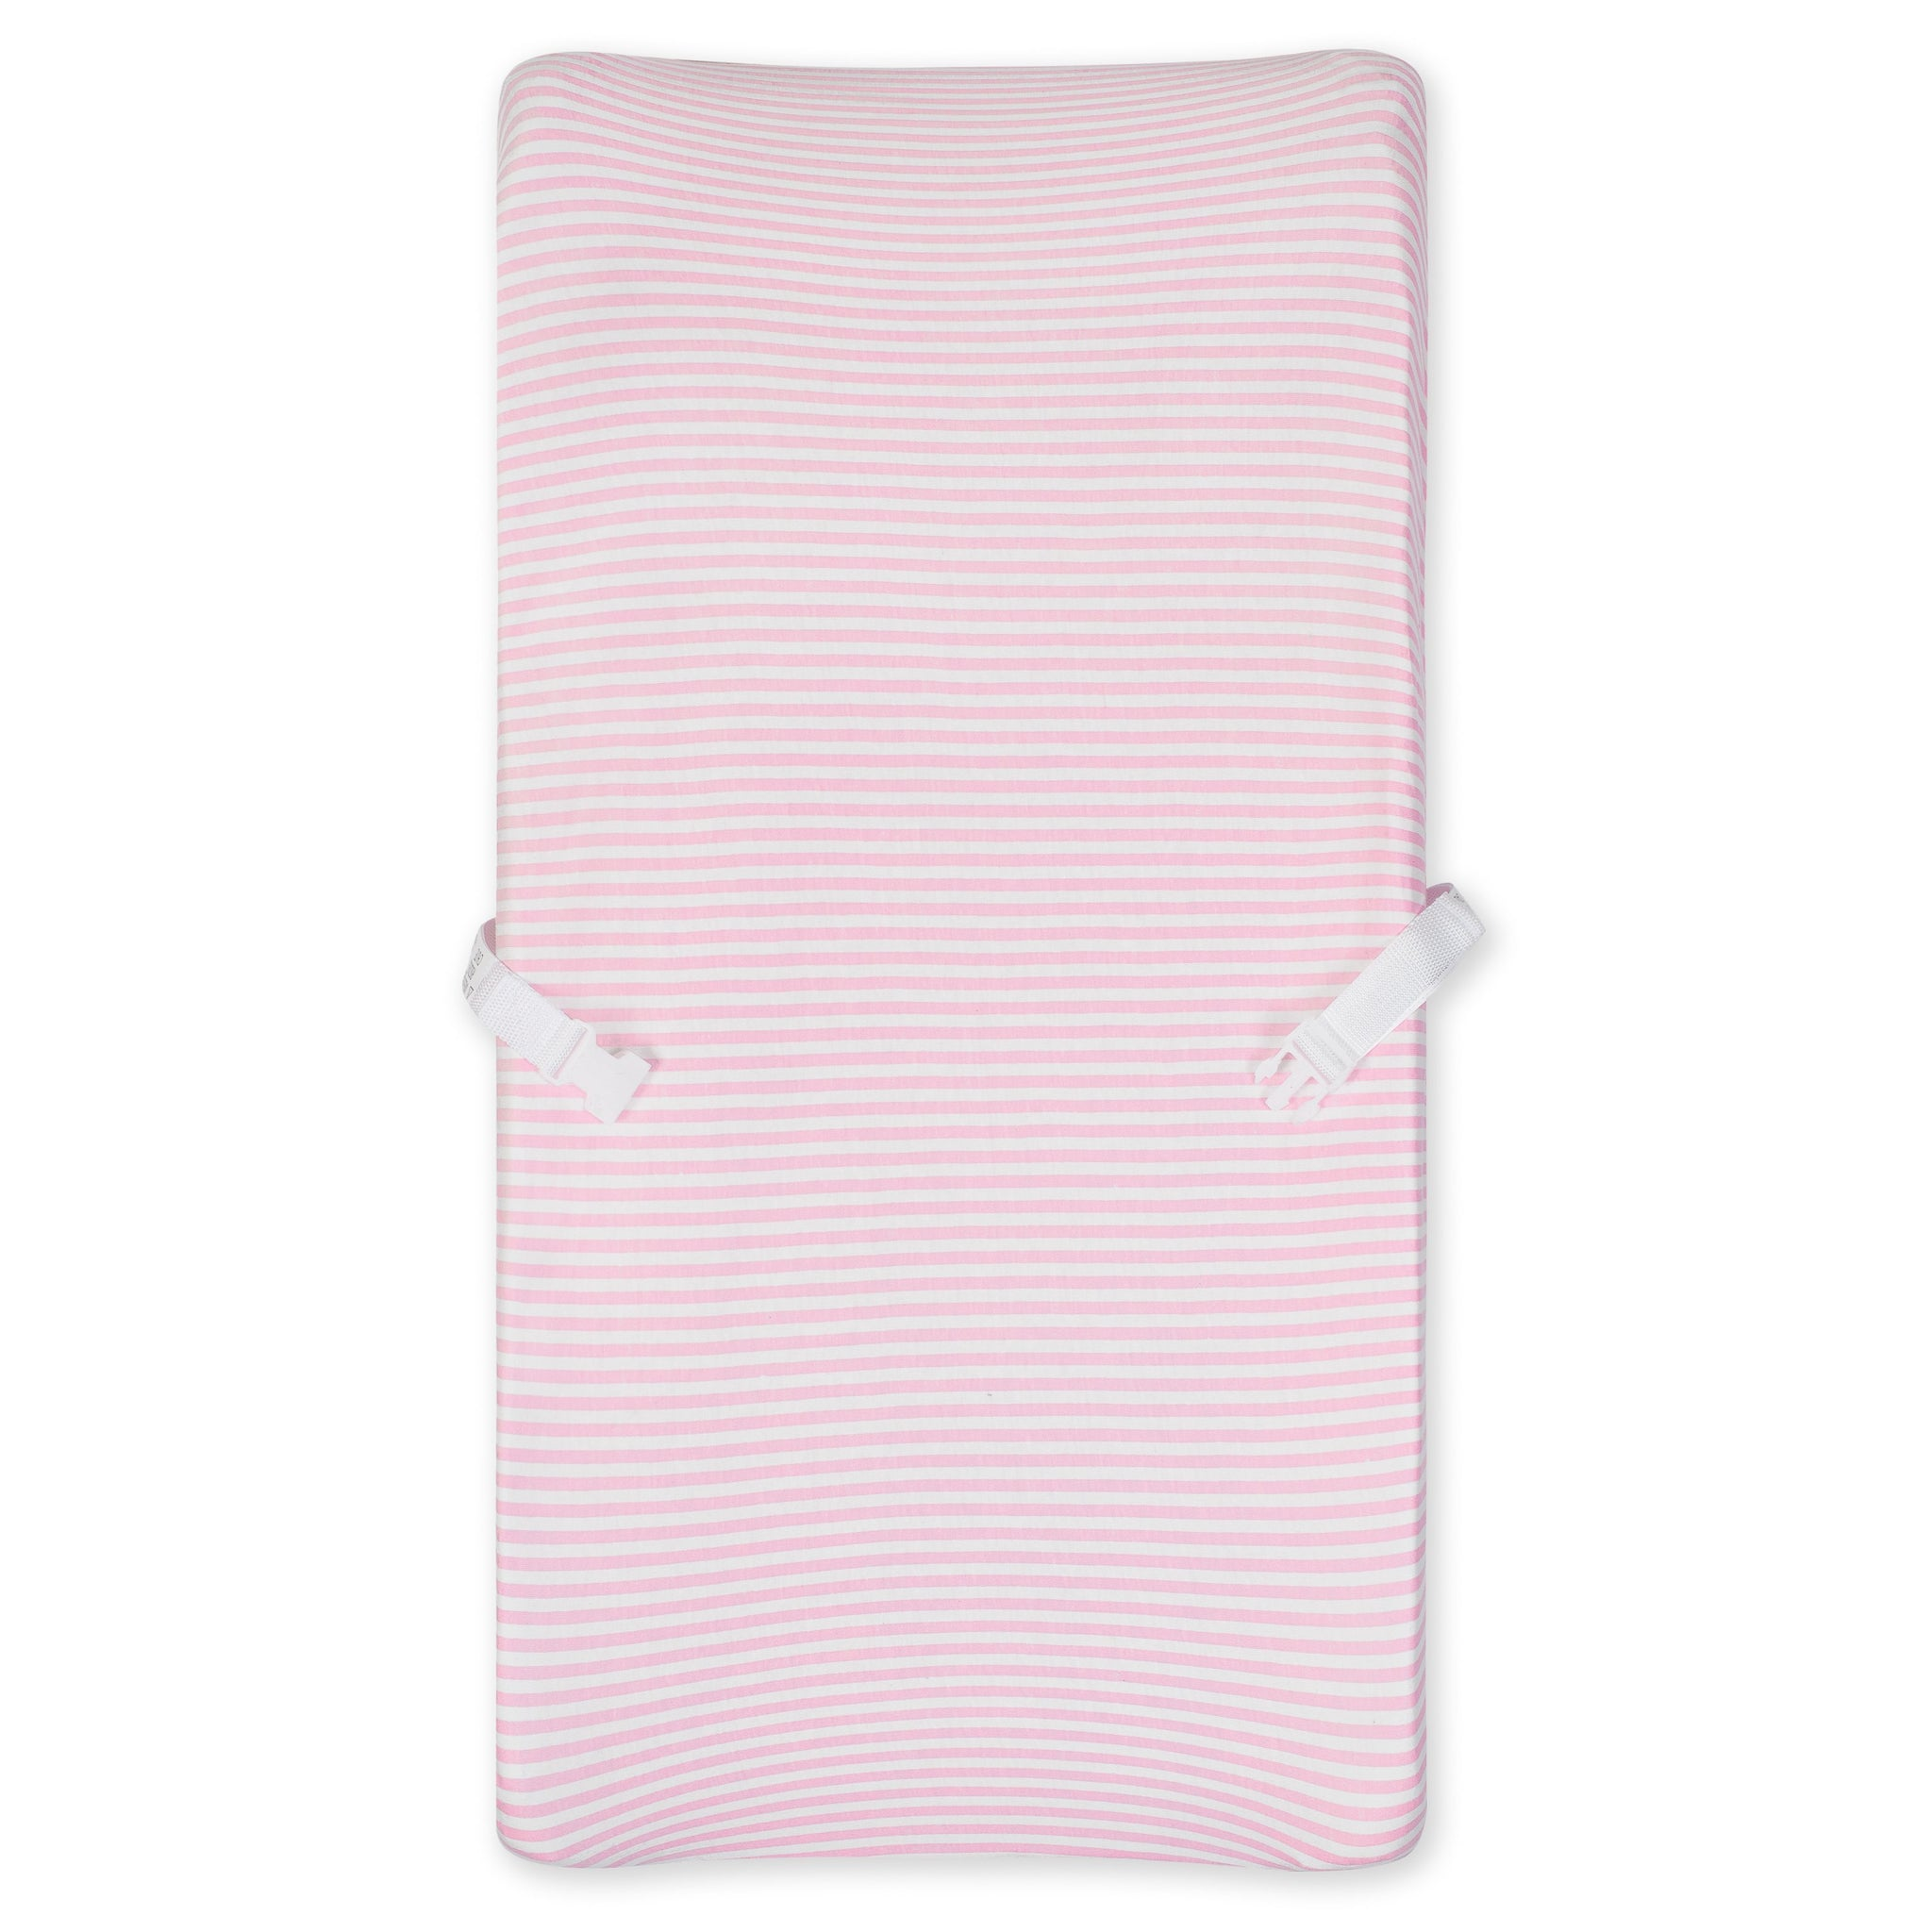 1-Pack Girls Pink Organic Changing Pad Cover